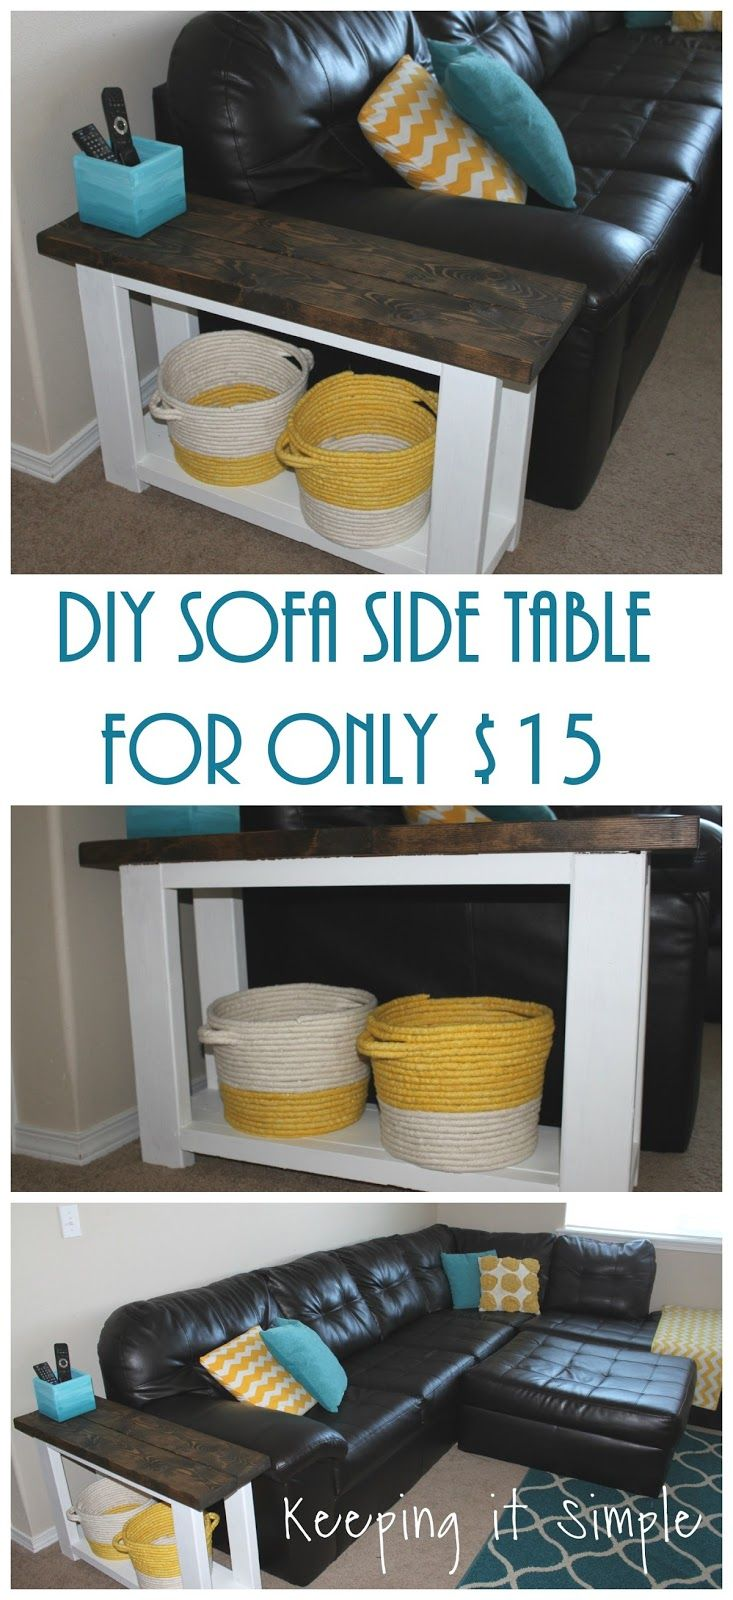 How To Build A DIY Sofa Side Table For About 15 Dollars! Step By Step